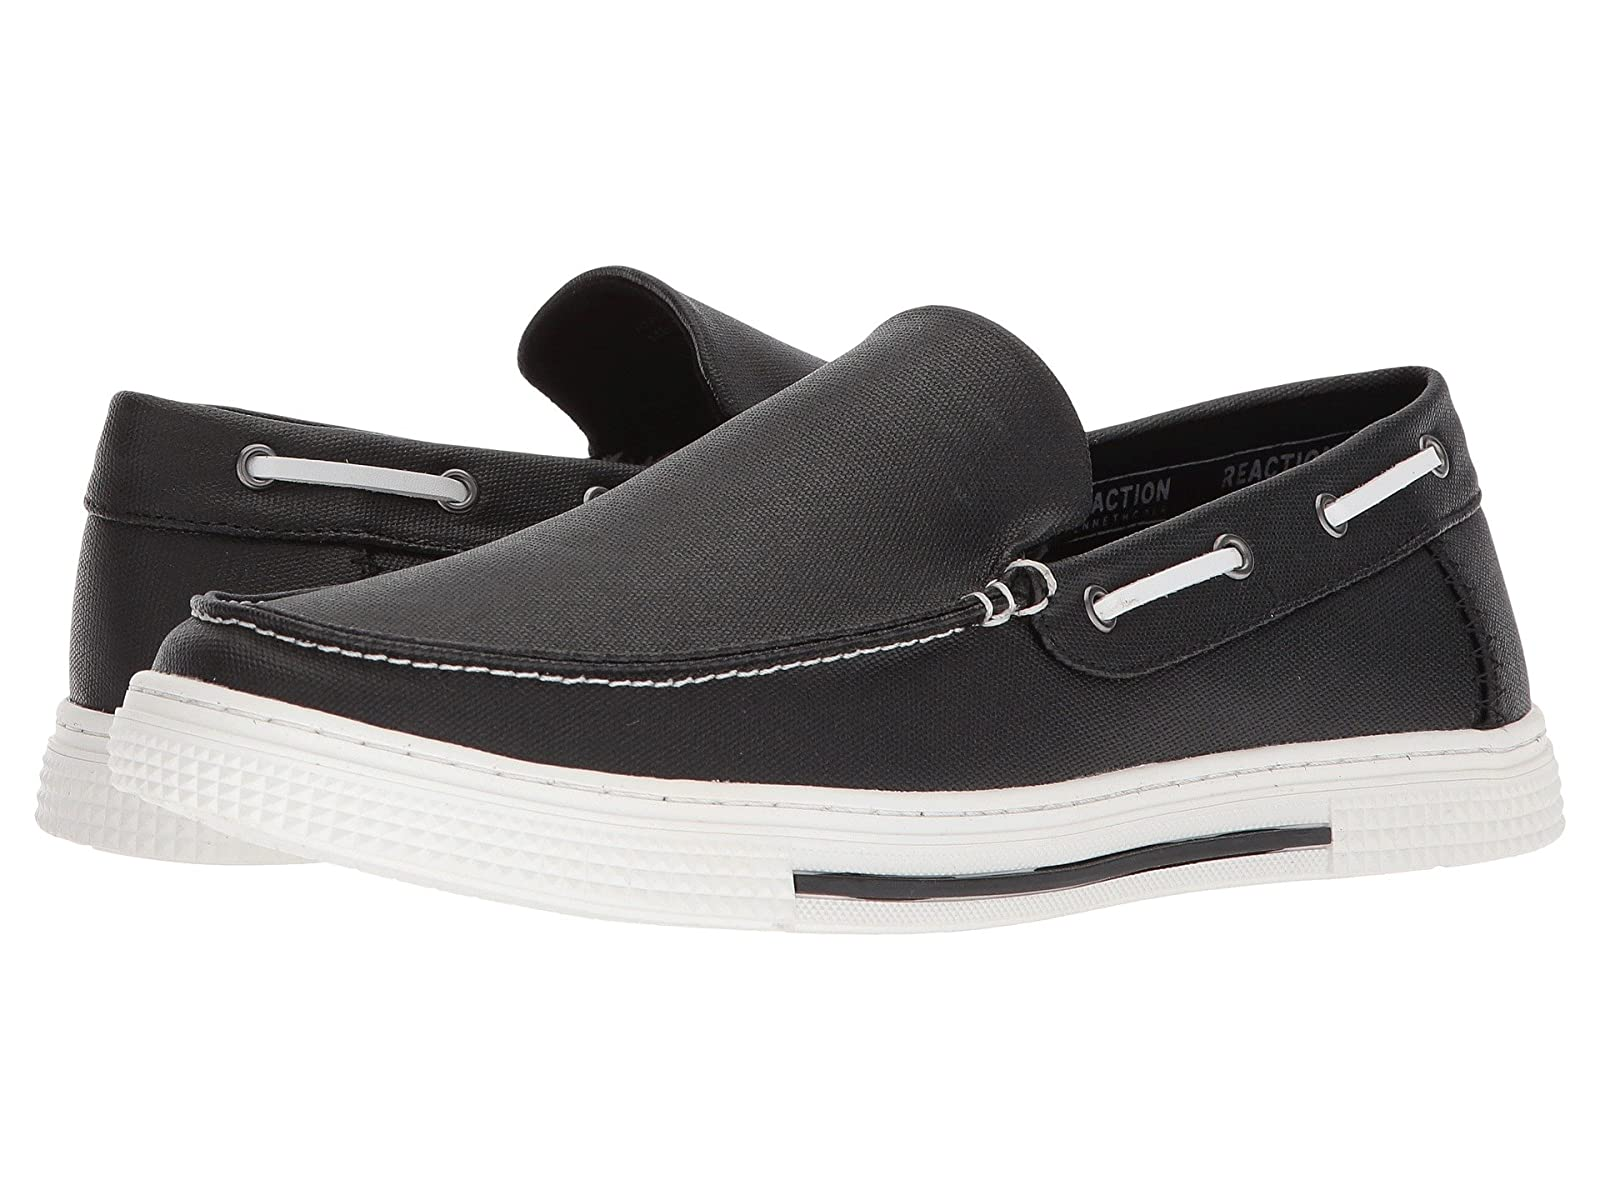 Kenneth Cole Reaction Ankir Slip-On BAtmospheric grades have affordable shoes